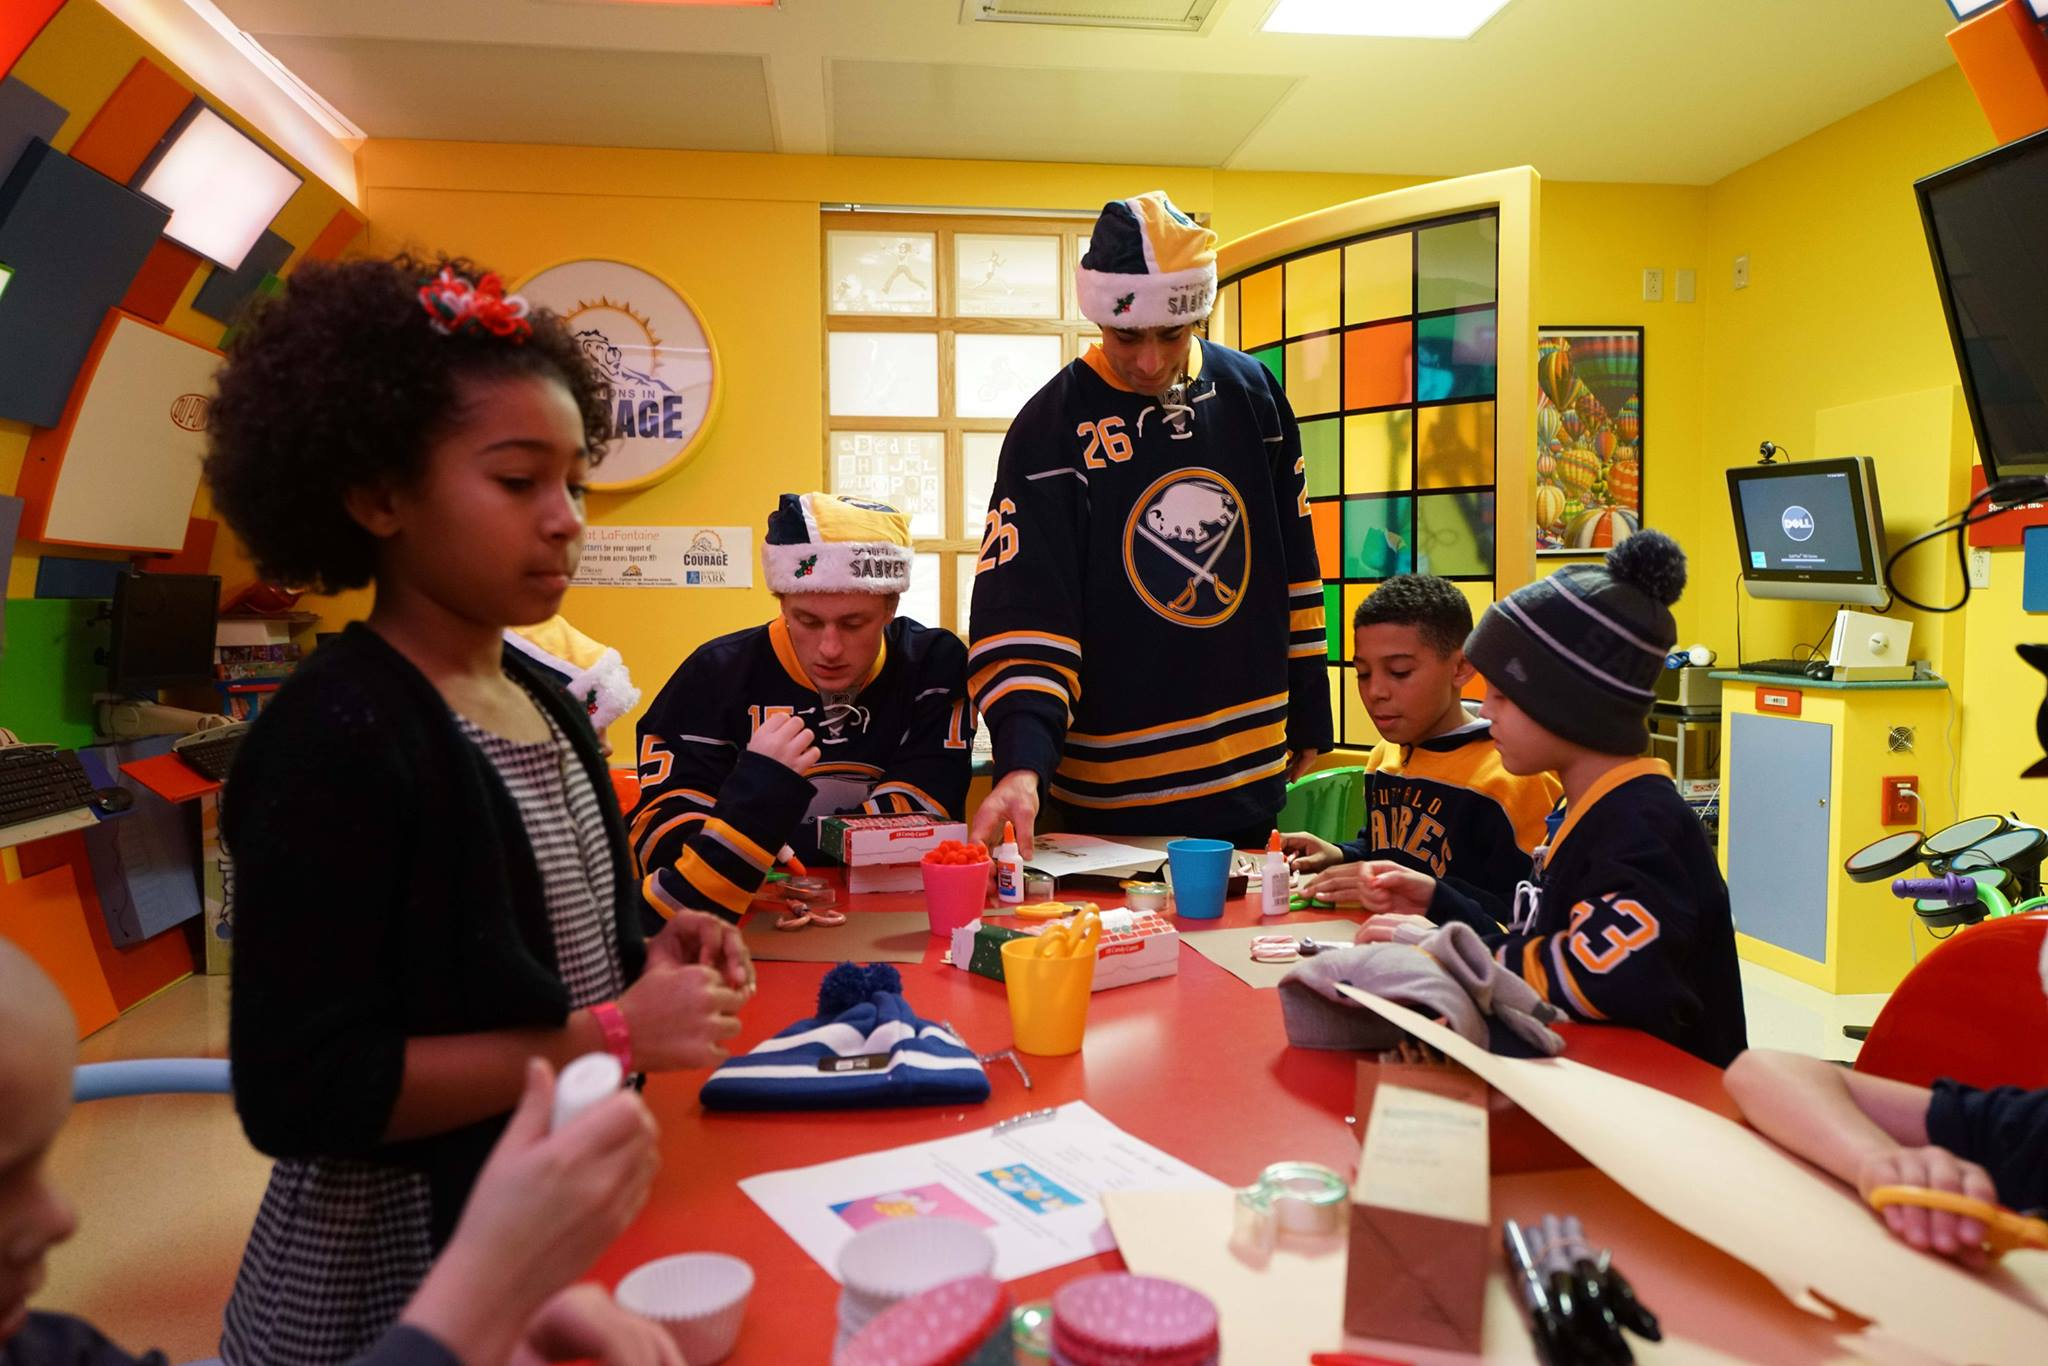 Jack Eichel and Matt Moulson work on crafts with young patients in the Lion's Den during a visit to RPCI on December 16, 2015.